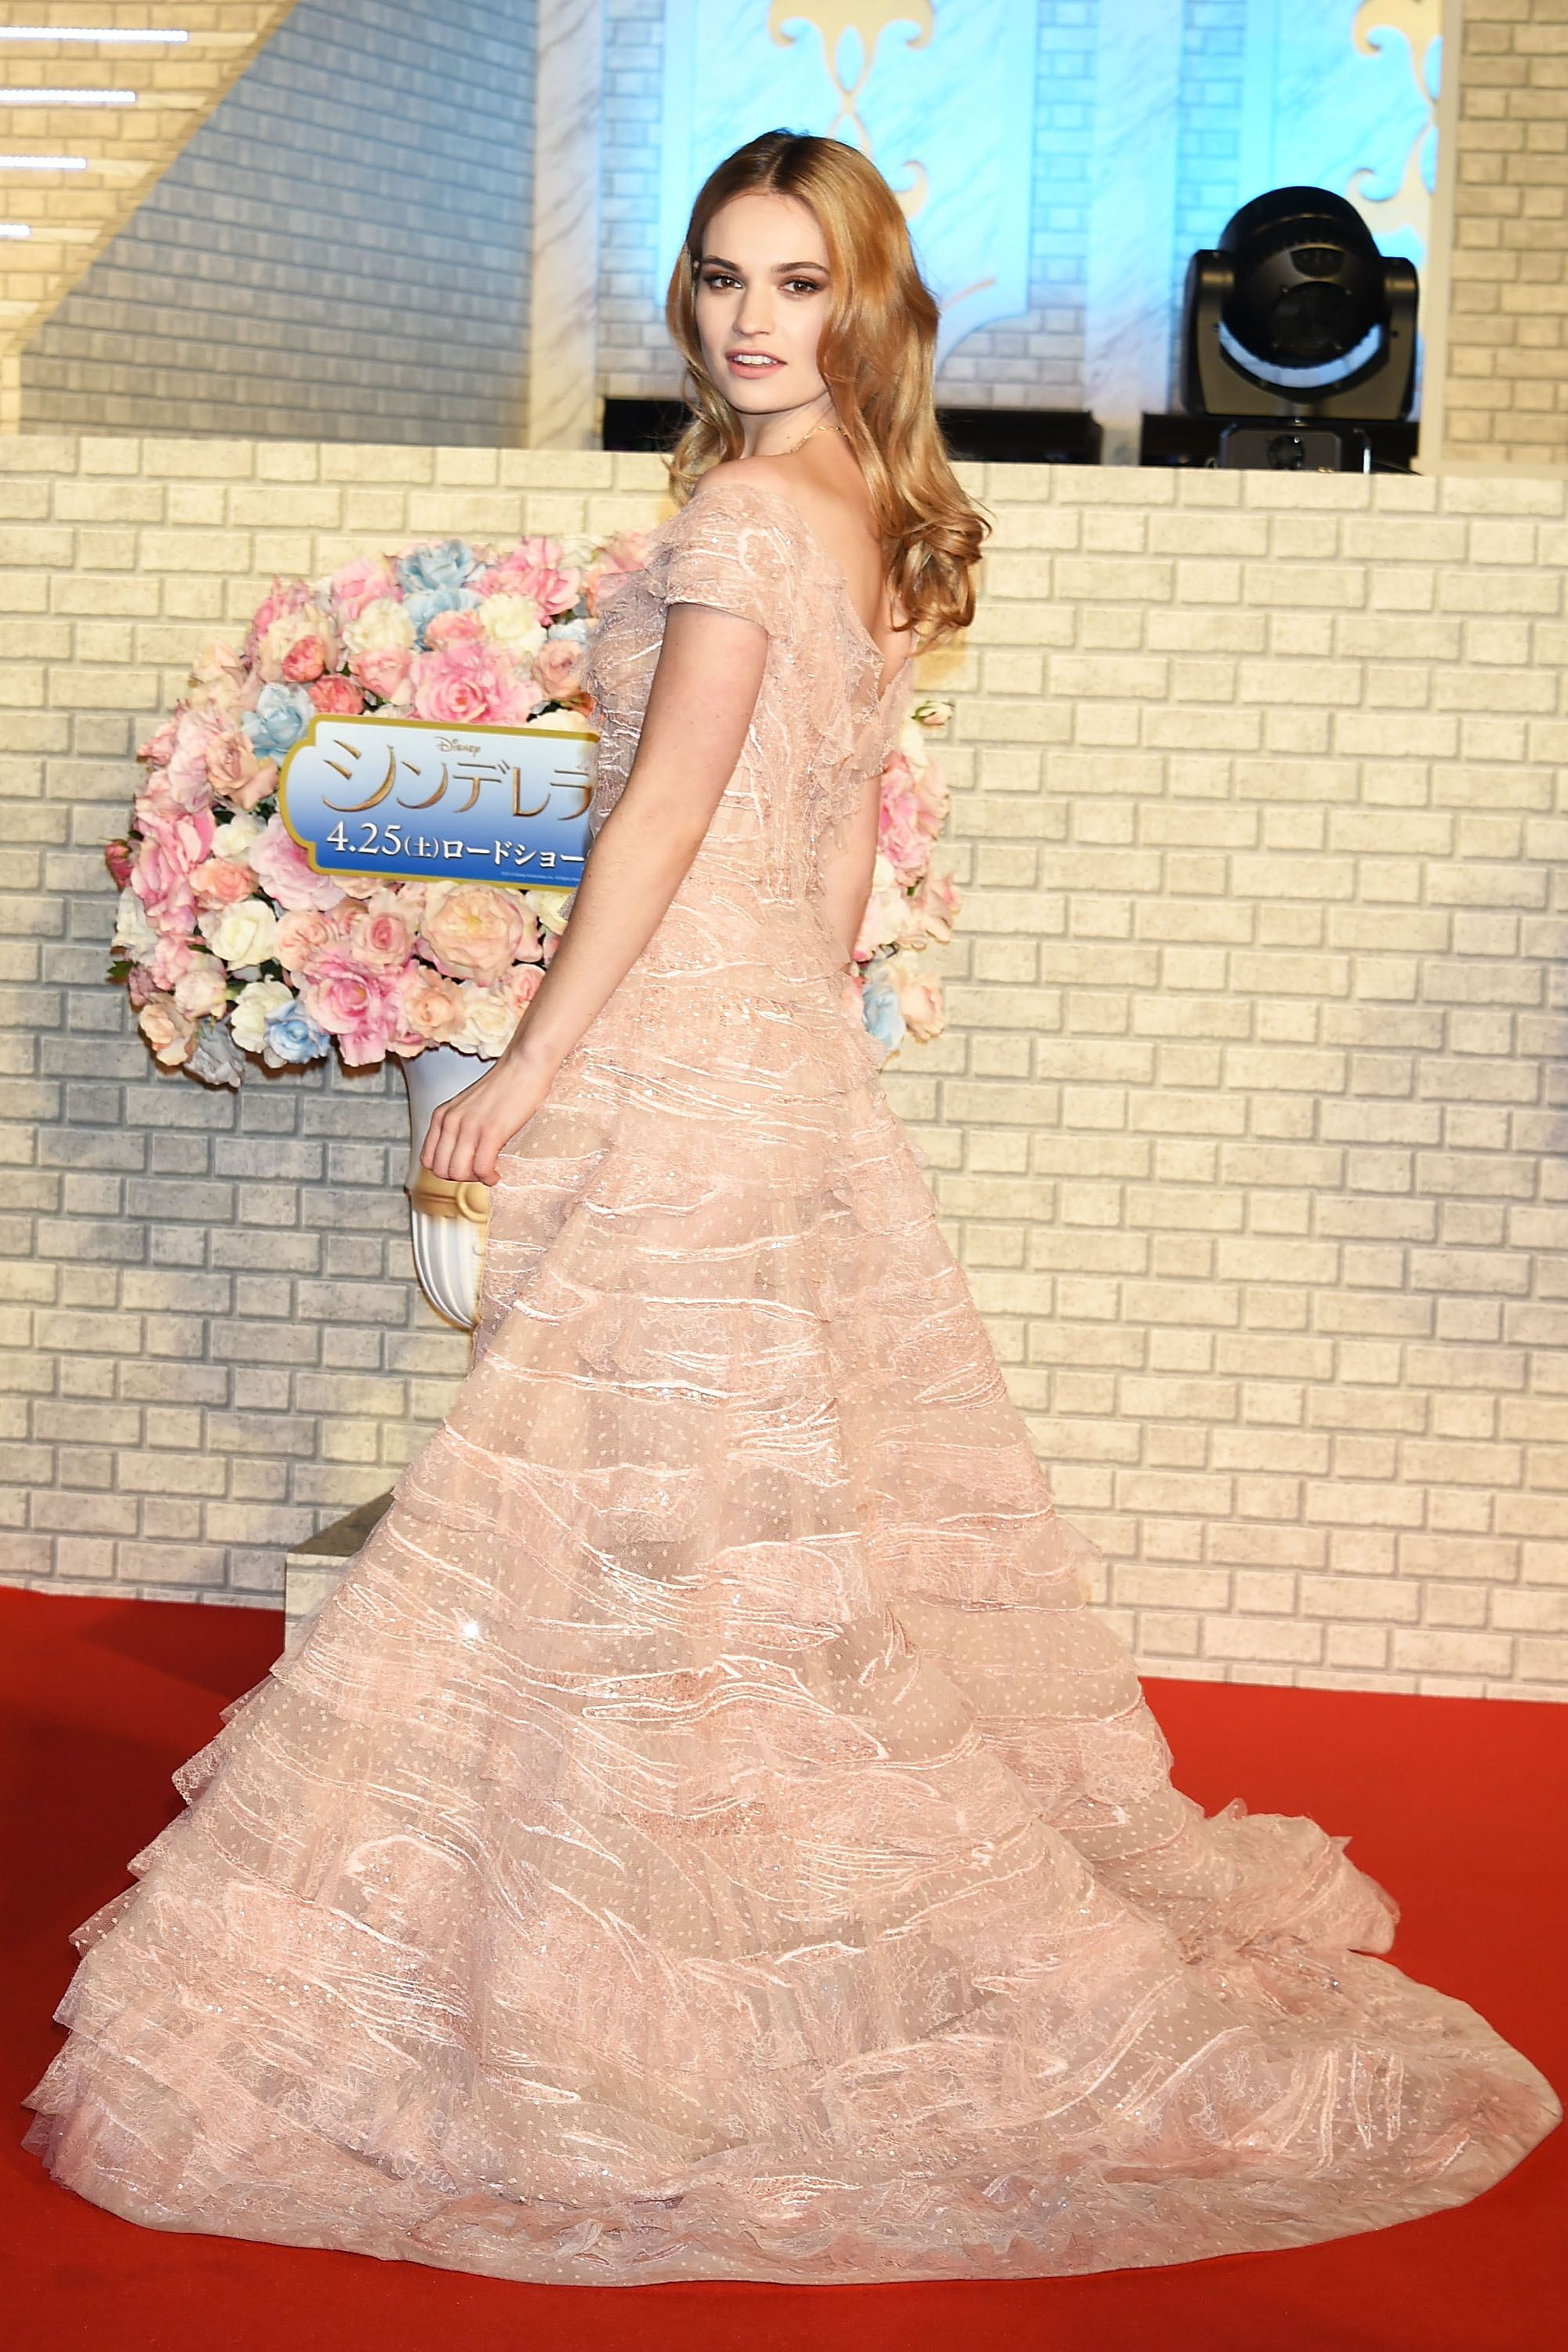 """TOKYO, JAPAN - APRIL 08:  Actress Lily James attends the premiere of """"Cinderella"""" at Roppongi Hills on April 8, 2015 in Tokyo, Japan.  (Photo by Jun Sato/WireImage)"""